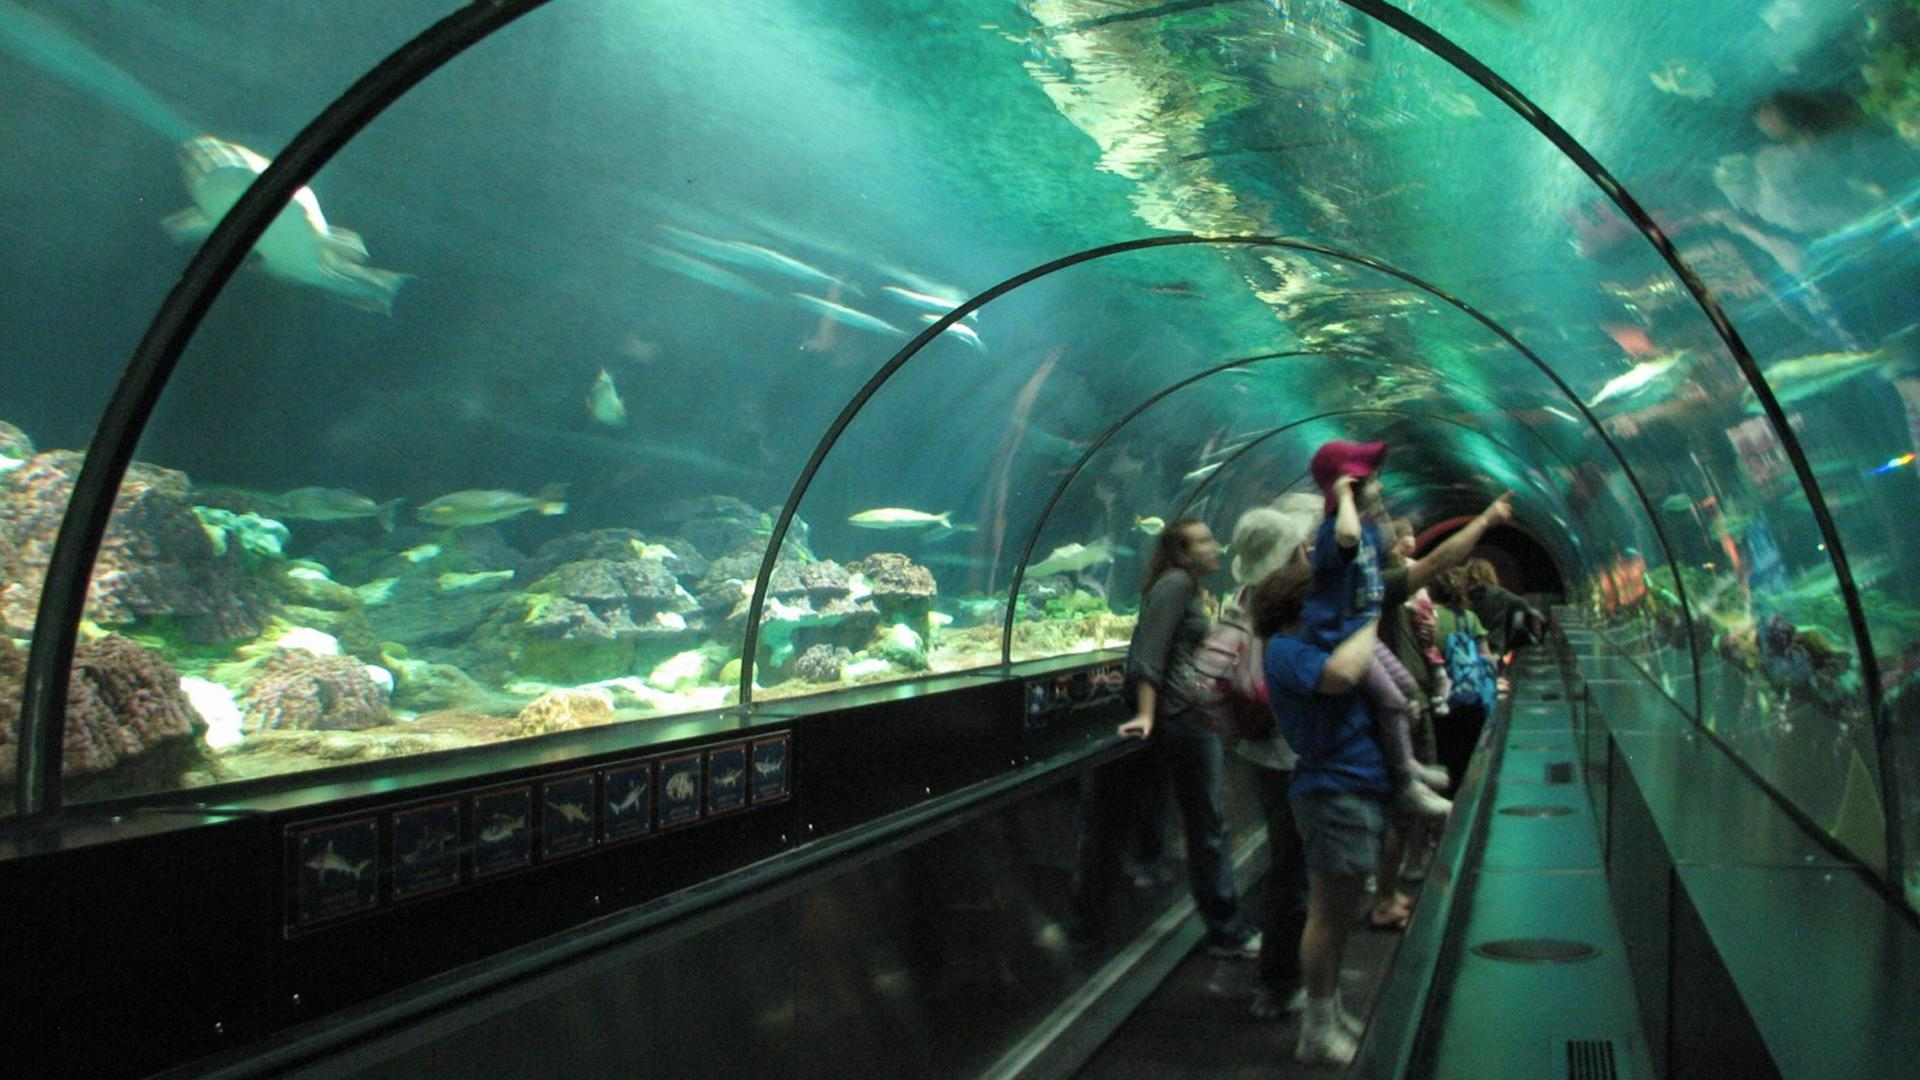 Shark Encounter - Orlando Tickets, Hotels, Packages Underwater Fish Tumblr